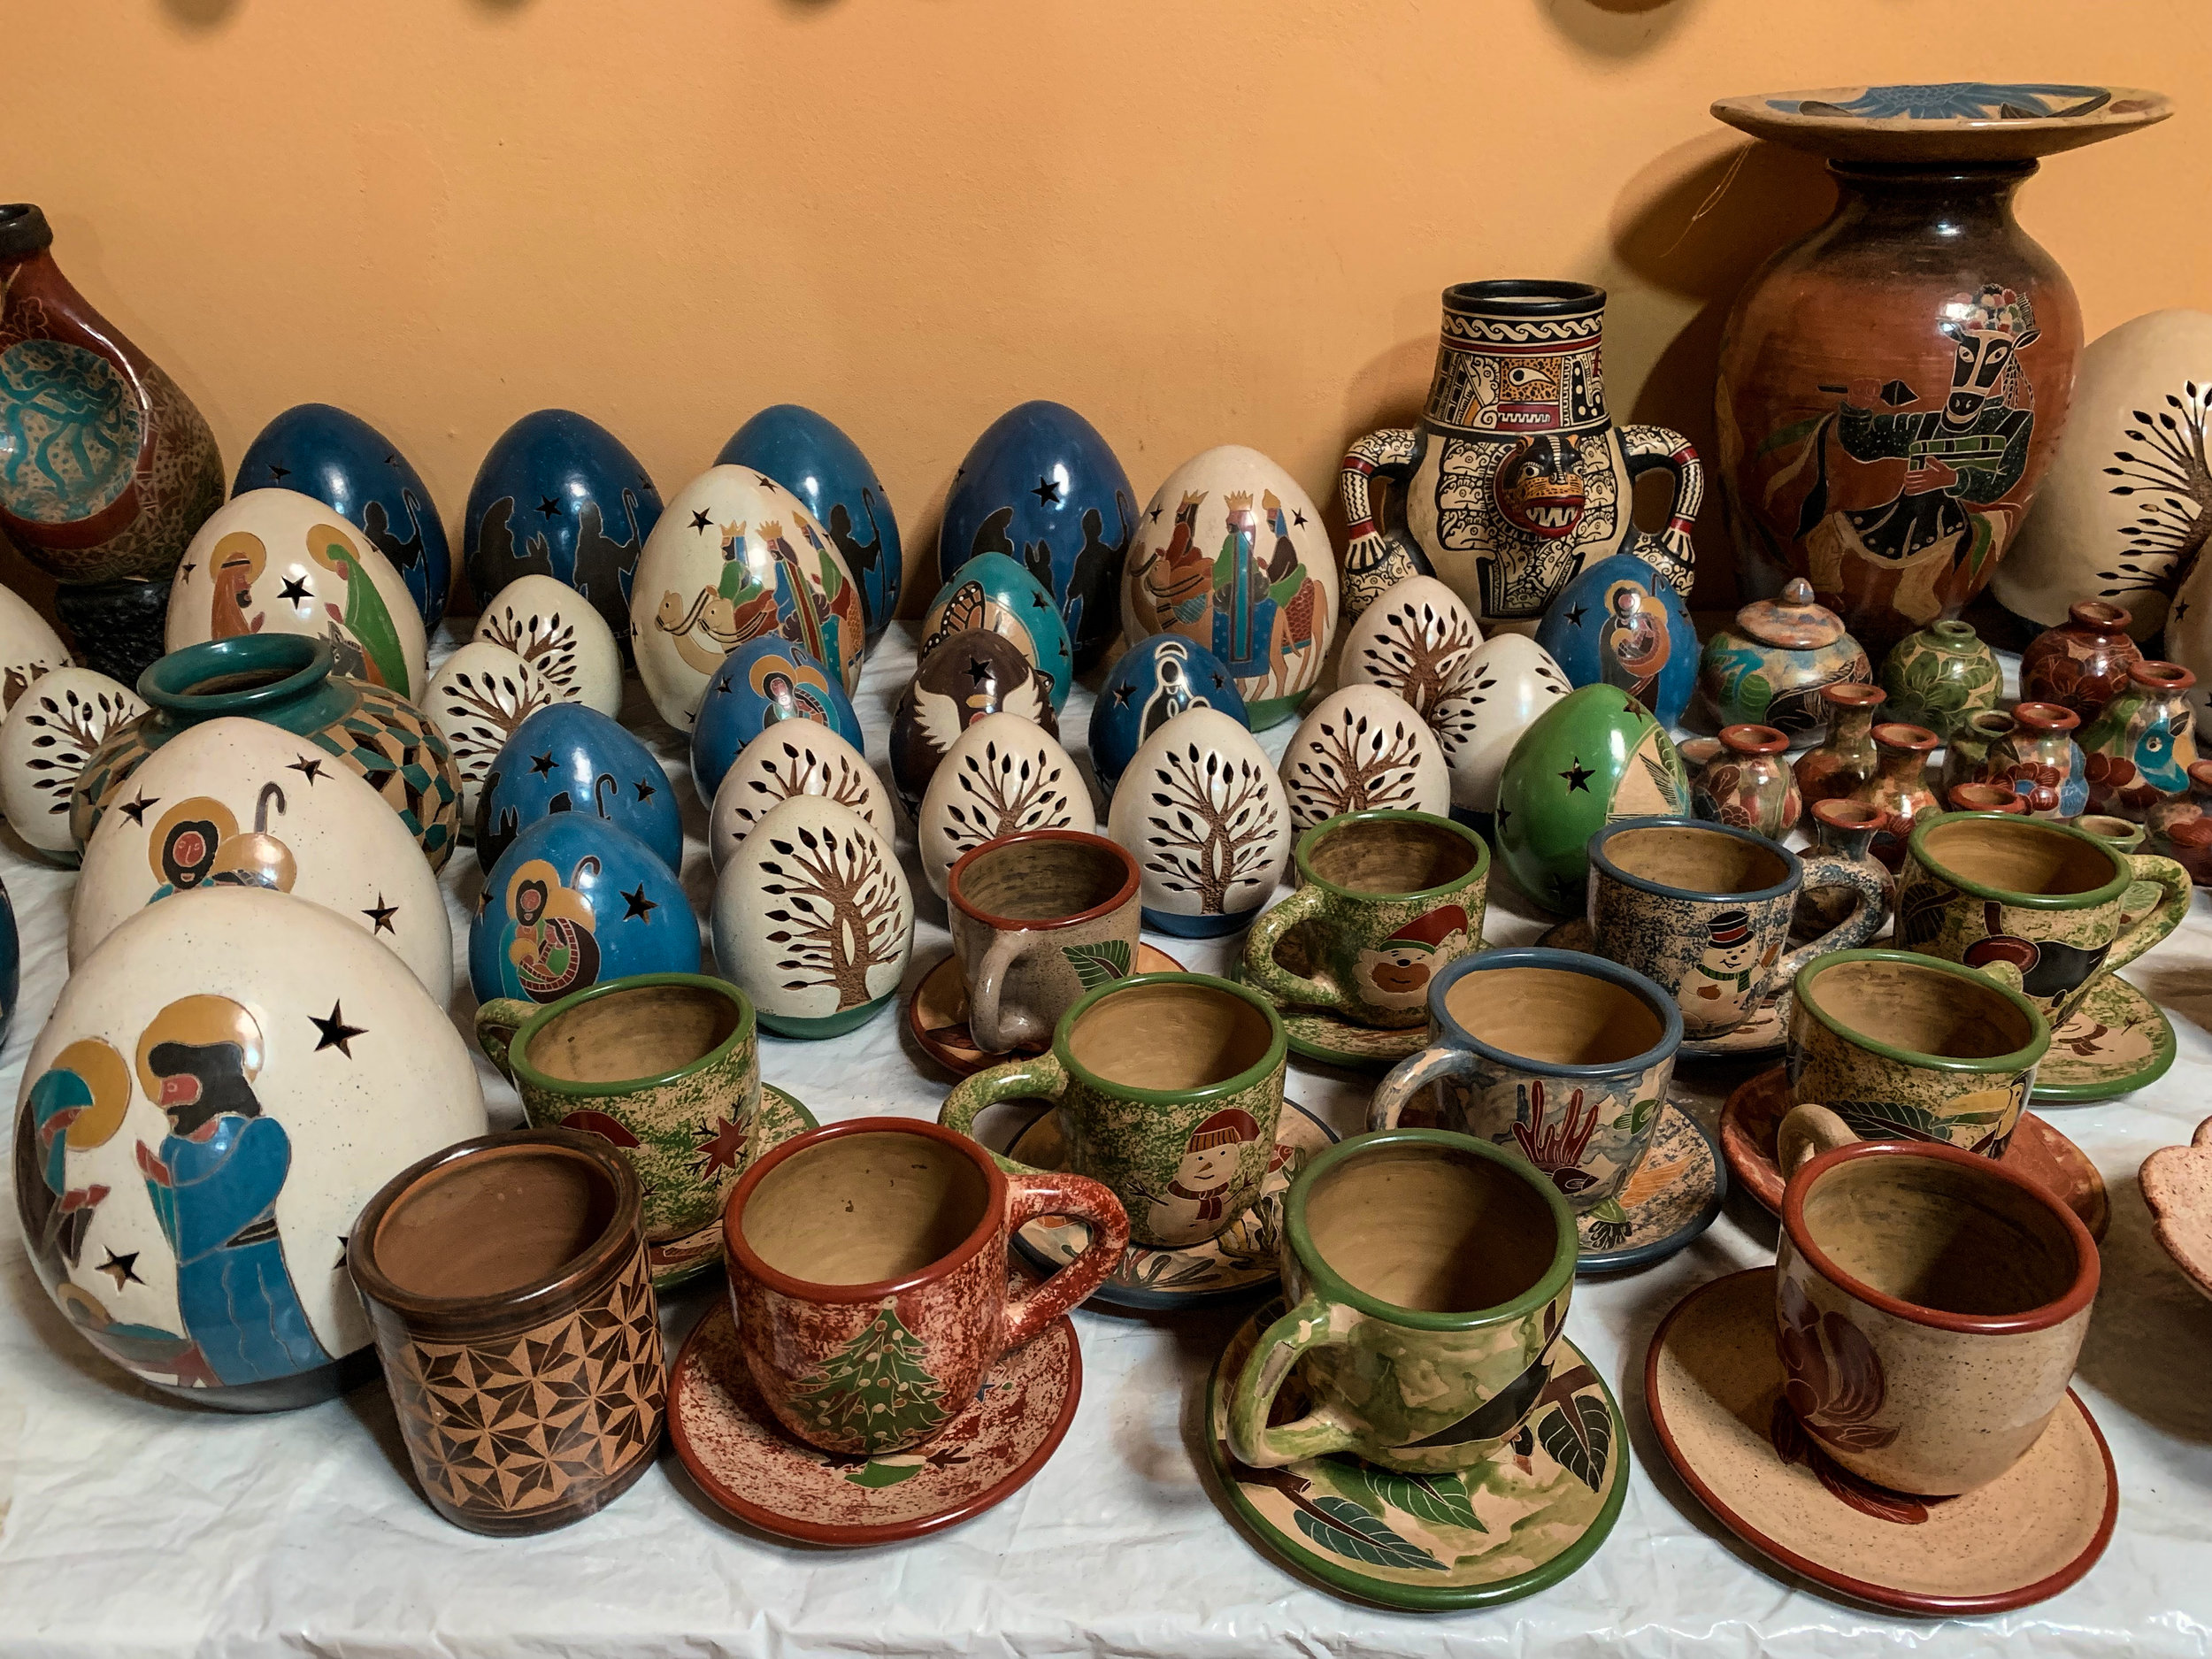 Natural pigments and hand carved details are hallmarks of San Juan de Oriente's unique style of pottery.